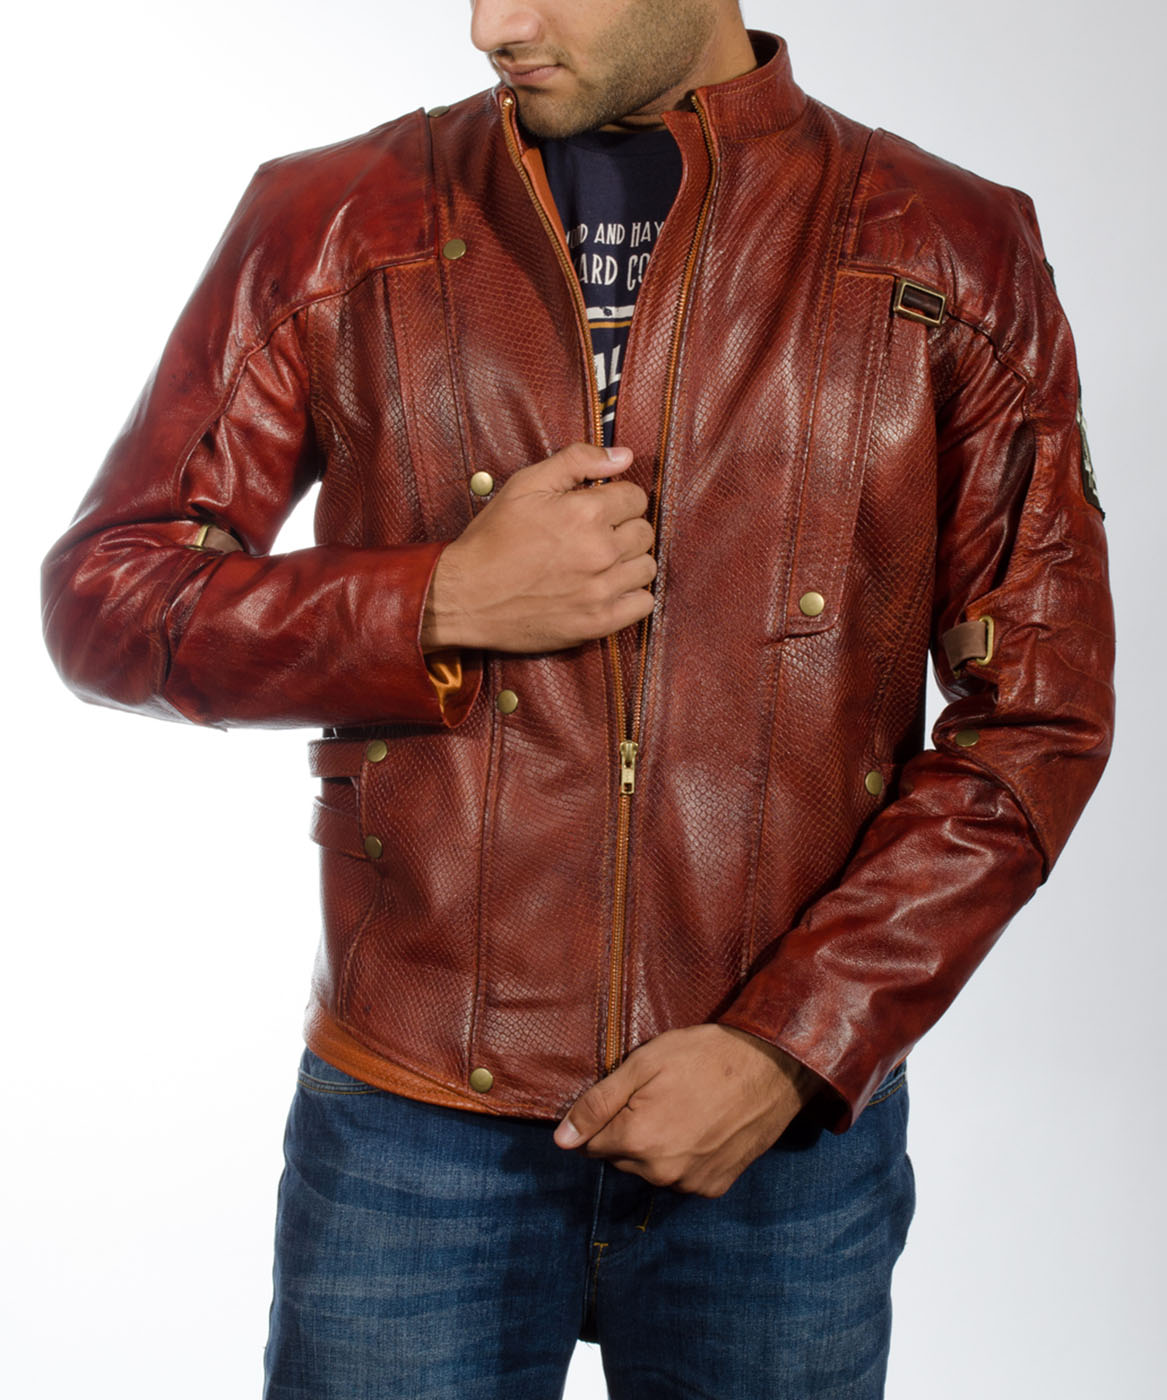 Tjm 0192 mars maroon leather jacket